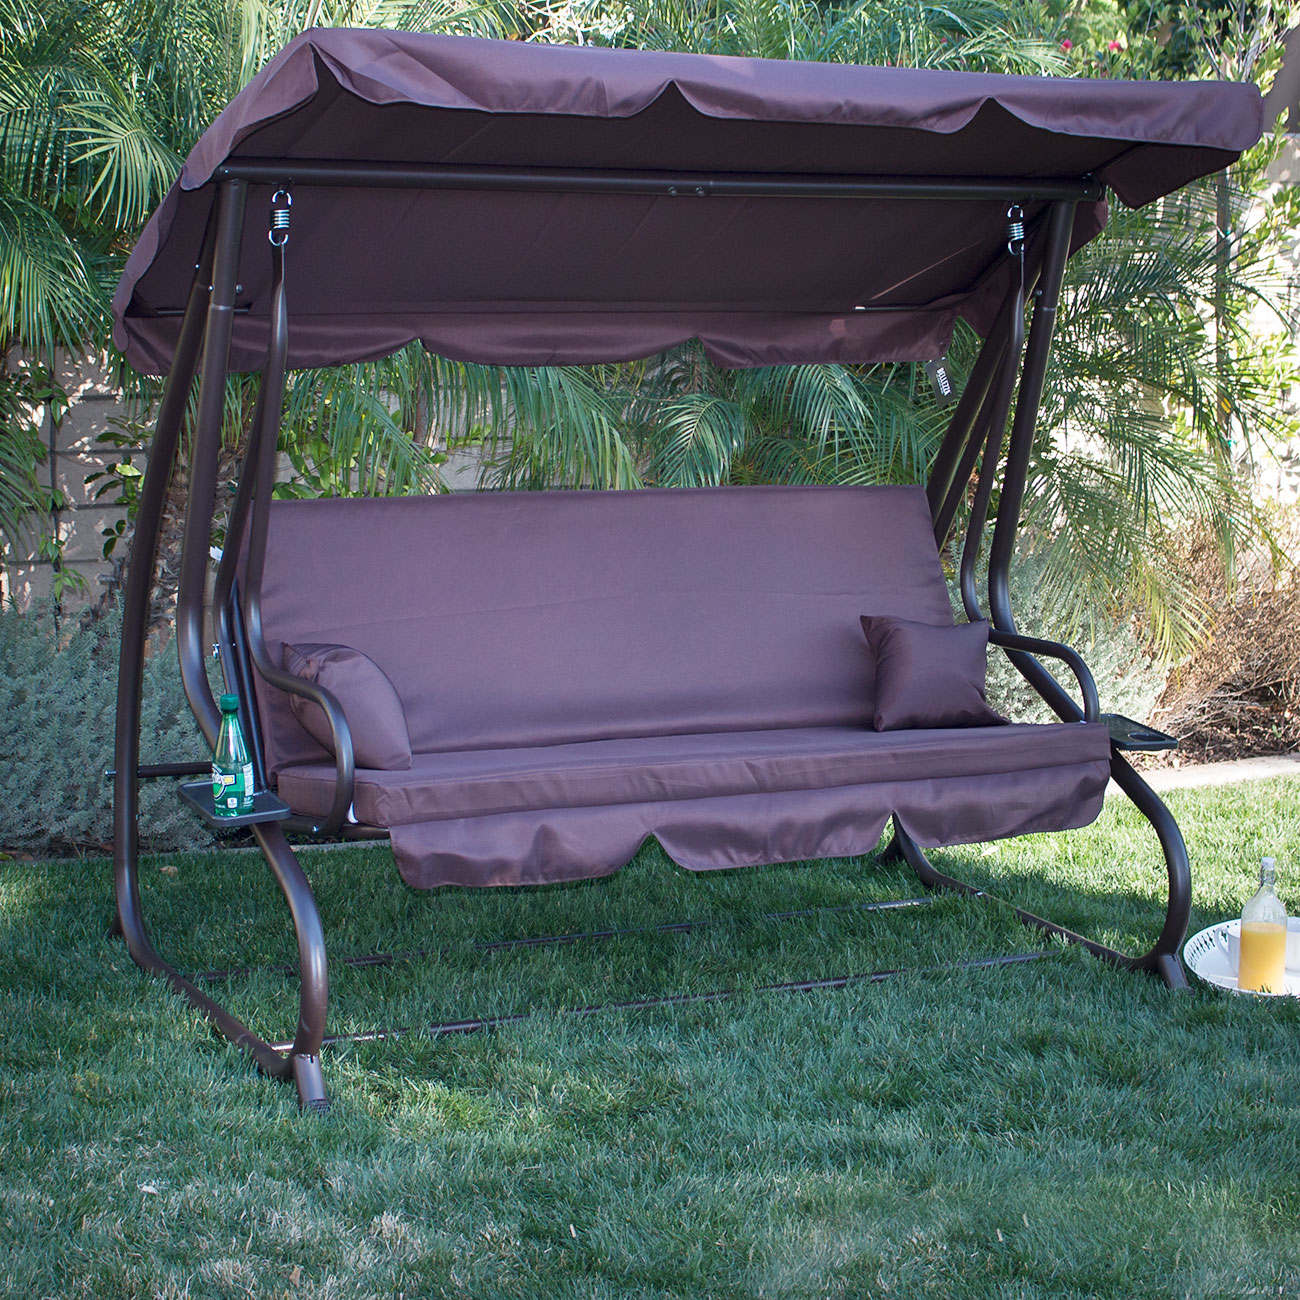 3 person outdoor swing w canopy seat patio hammock furniture bench yard loveseat ebay. Black Bedroom Furniture Sets. Home Design Ideas